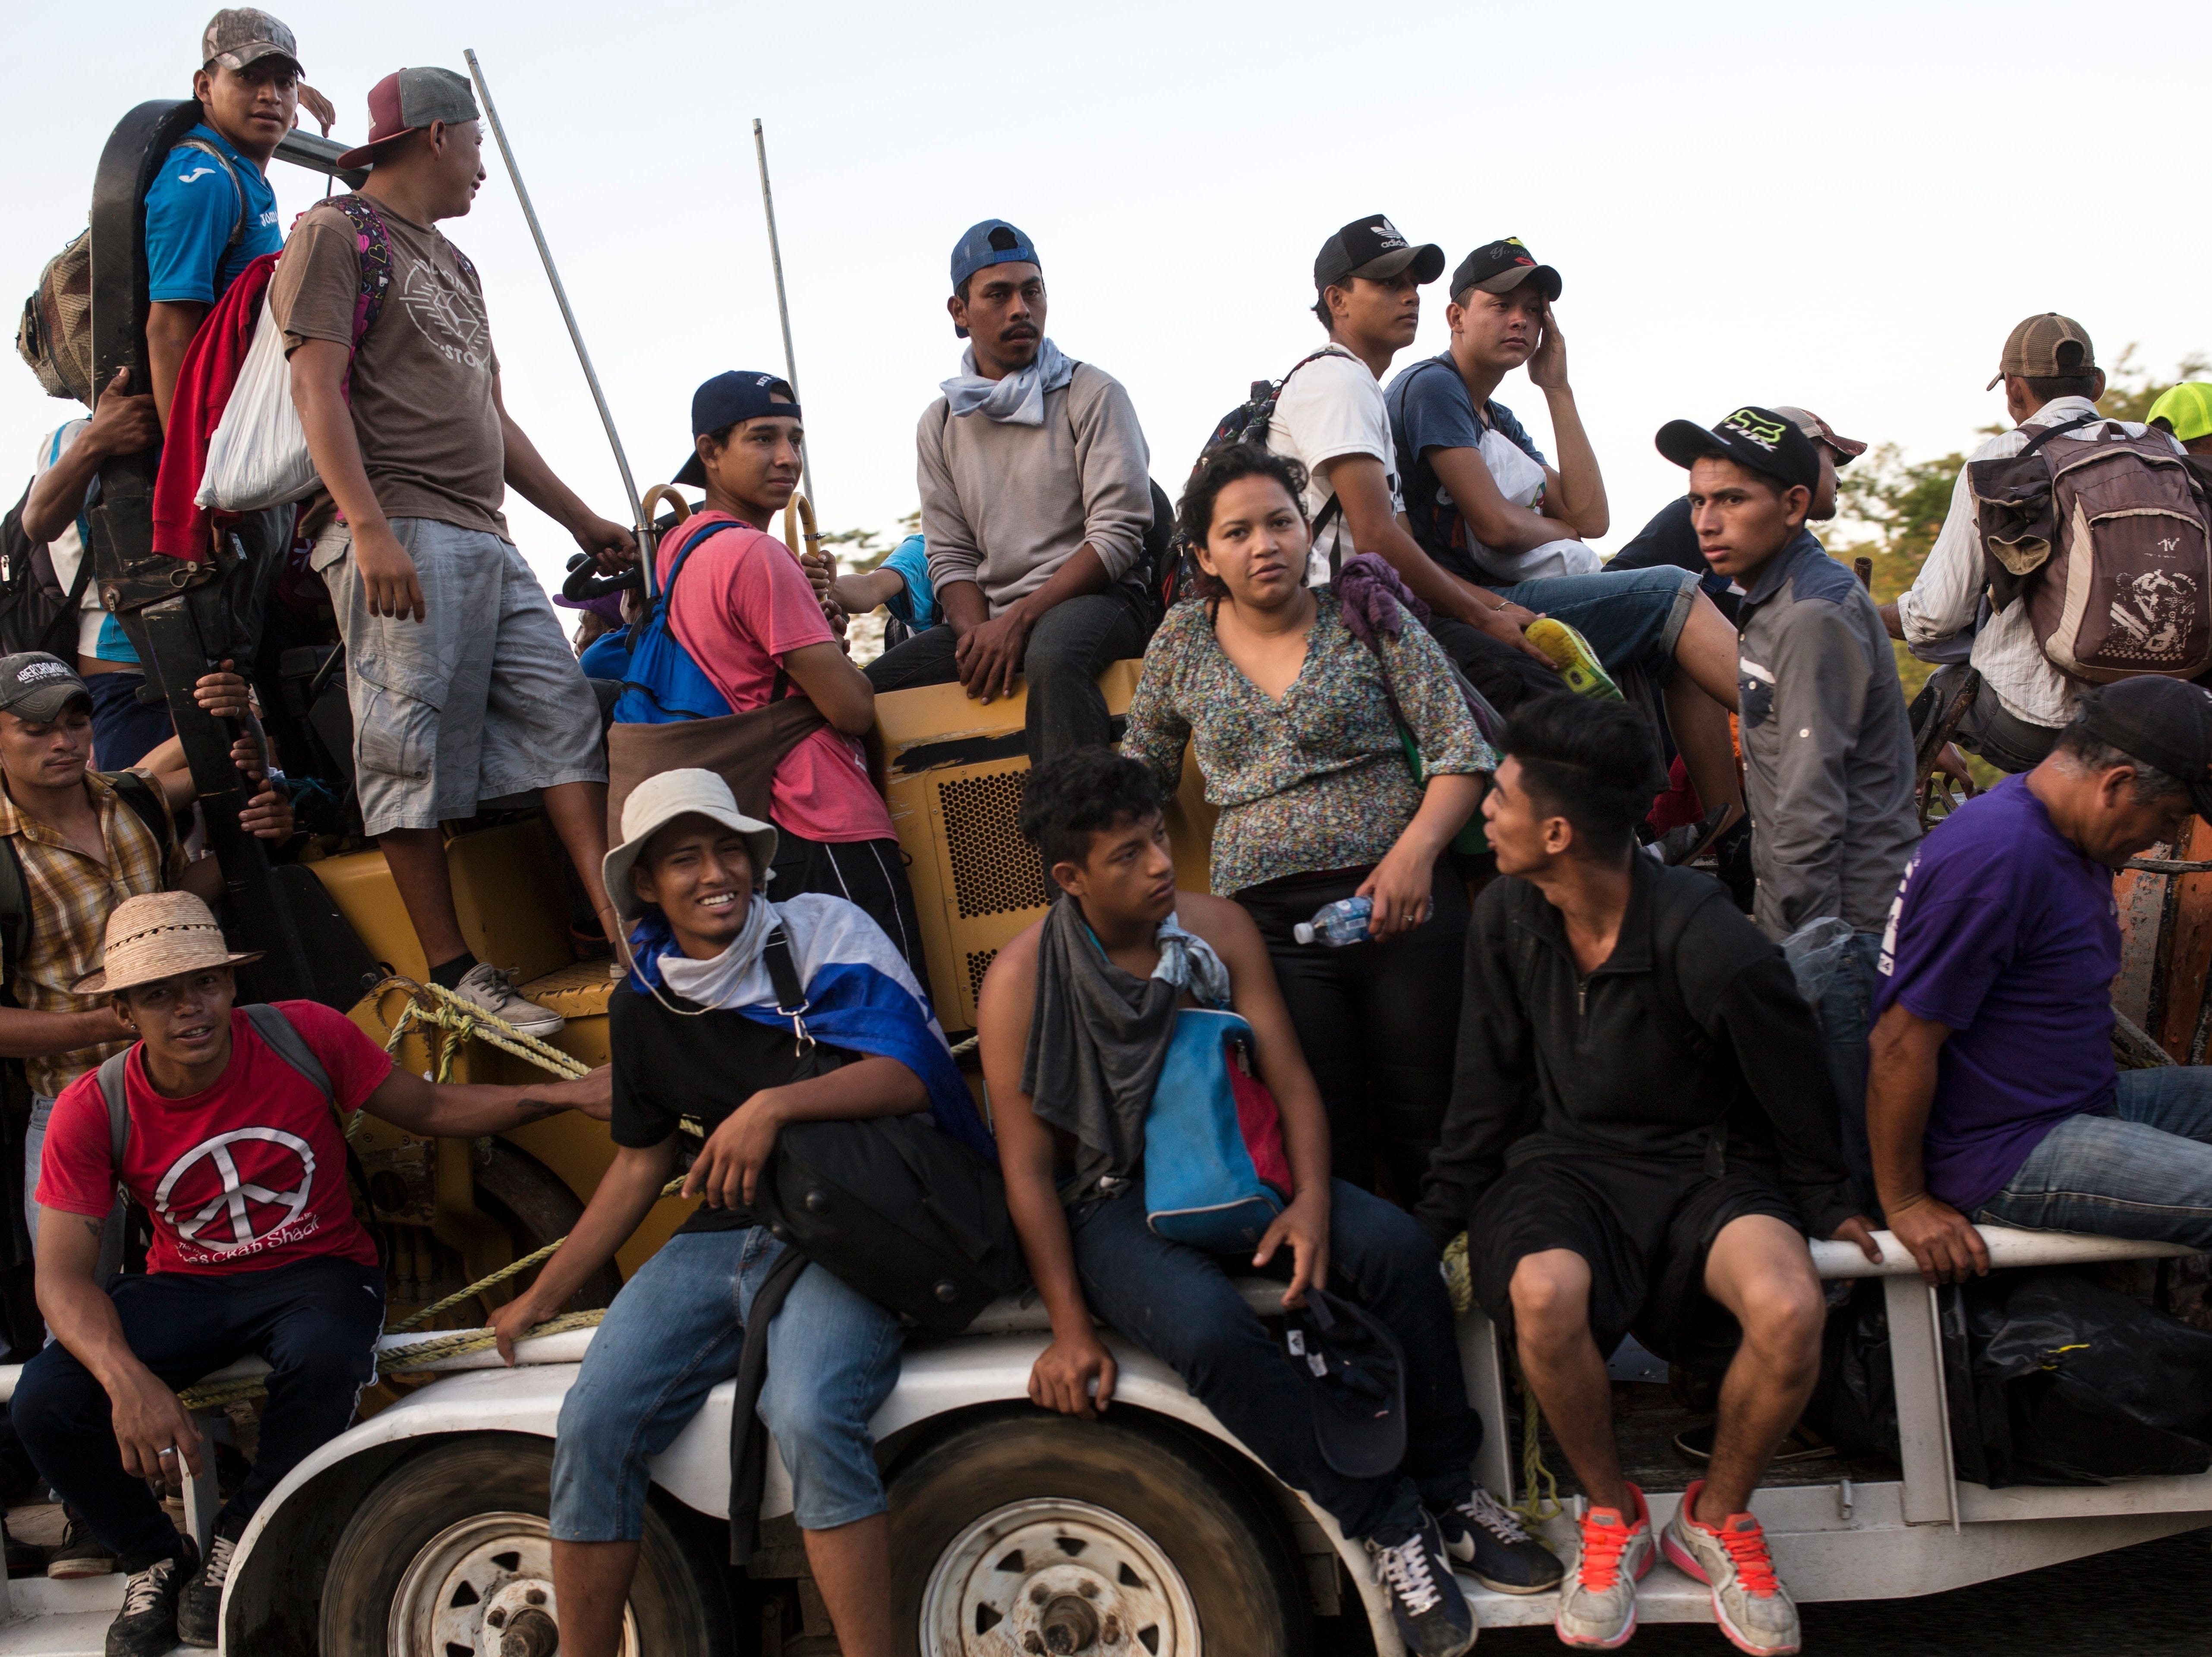 Central American migrants traveling with a caravan to the U.S. crowd onto a tractor as they make their way to Mapastepec, Mexico, Wednesday, Oct. 24, 2018. Thousands of Central American migrants renewed their hoped-for march to the United States on Wednesday, setting out before dawn with plans to travel another 45 miles (75 kilometers) of the more than 1,000 miles that still lie before them.